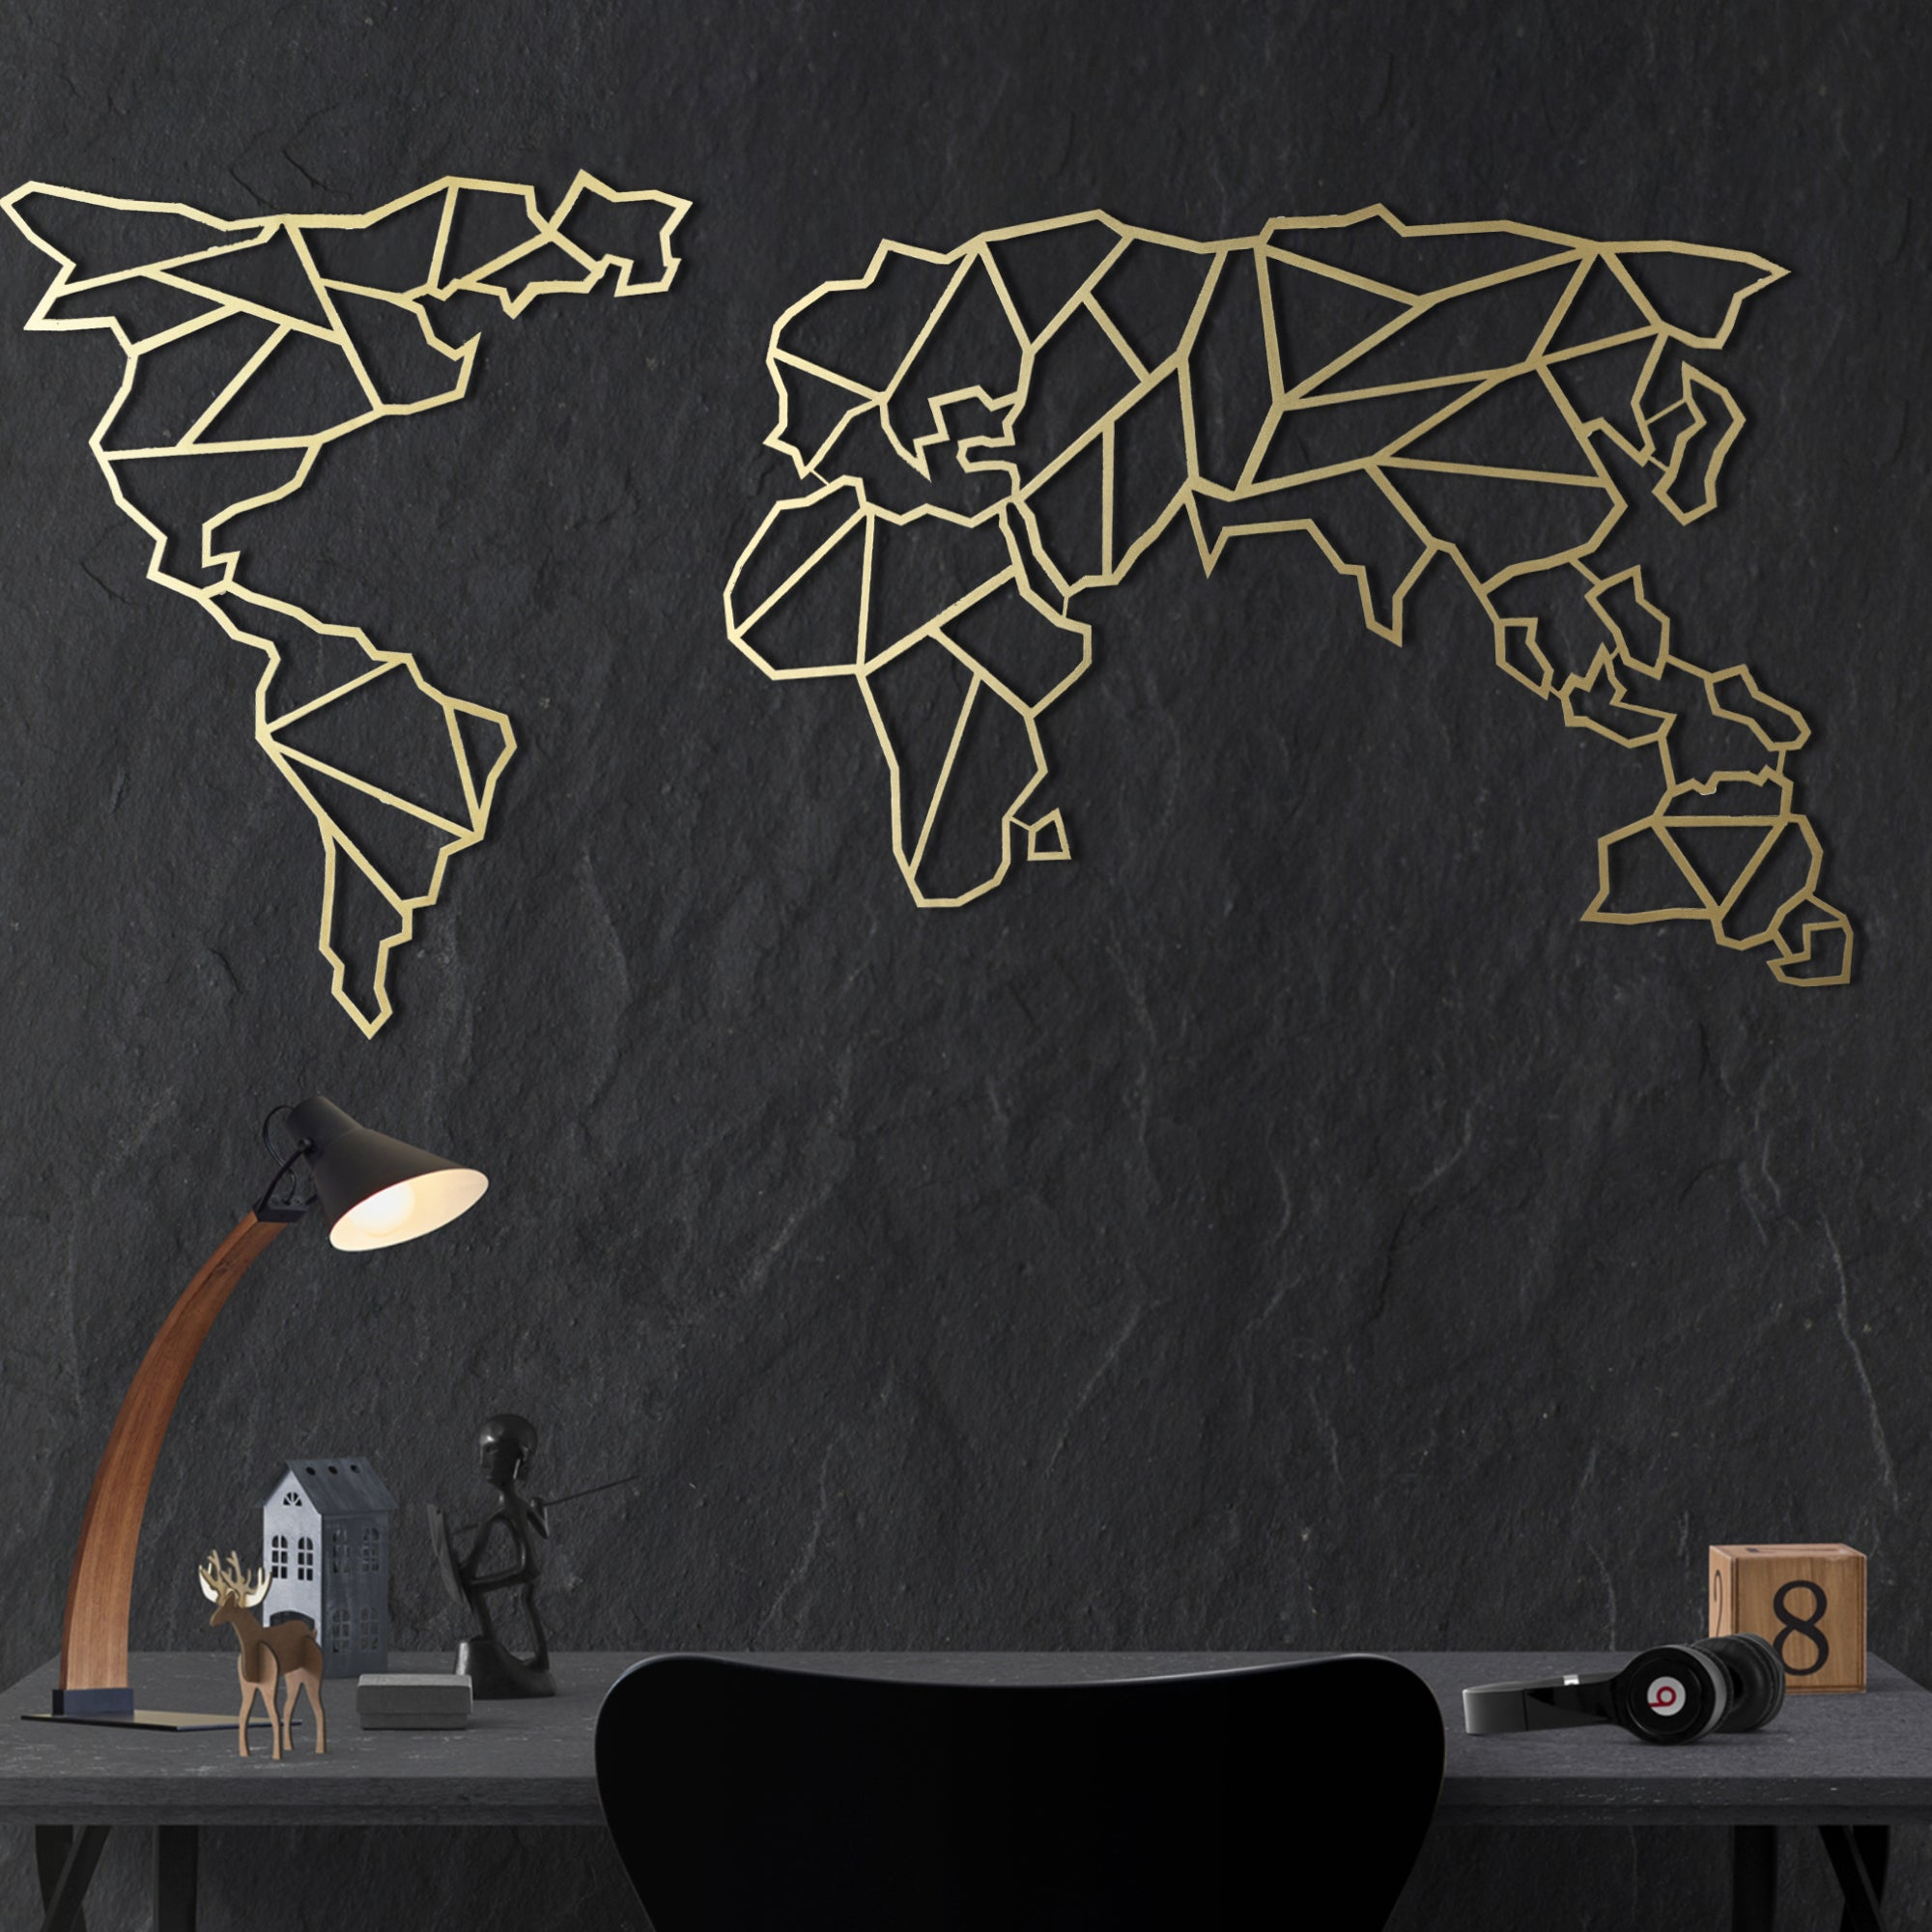 Bystag metal dekoratif duvar aksesuarı dünya haritası- Bystag metal wall art-wall art-wall decor-metal wall decor-world map-metal world map-gold world map